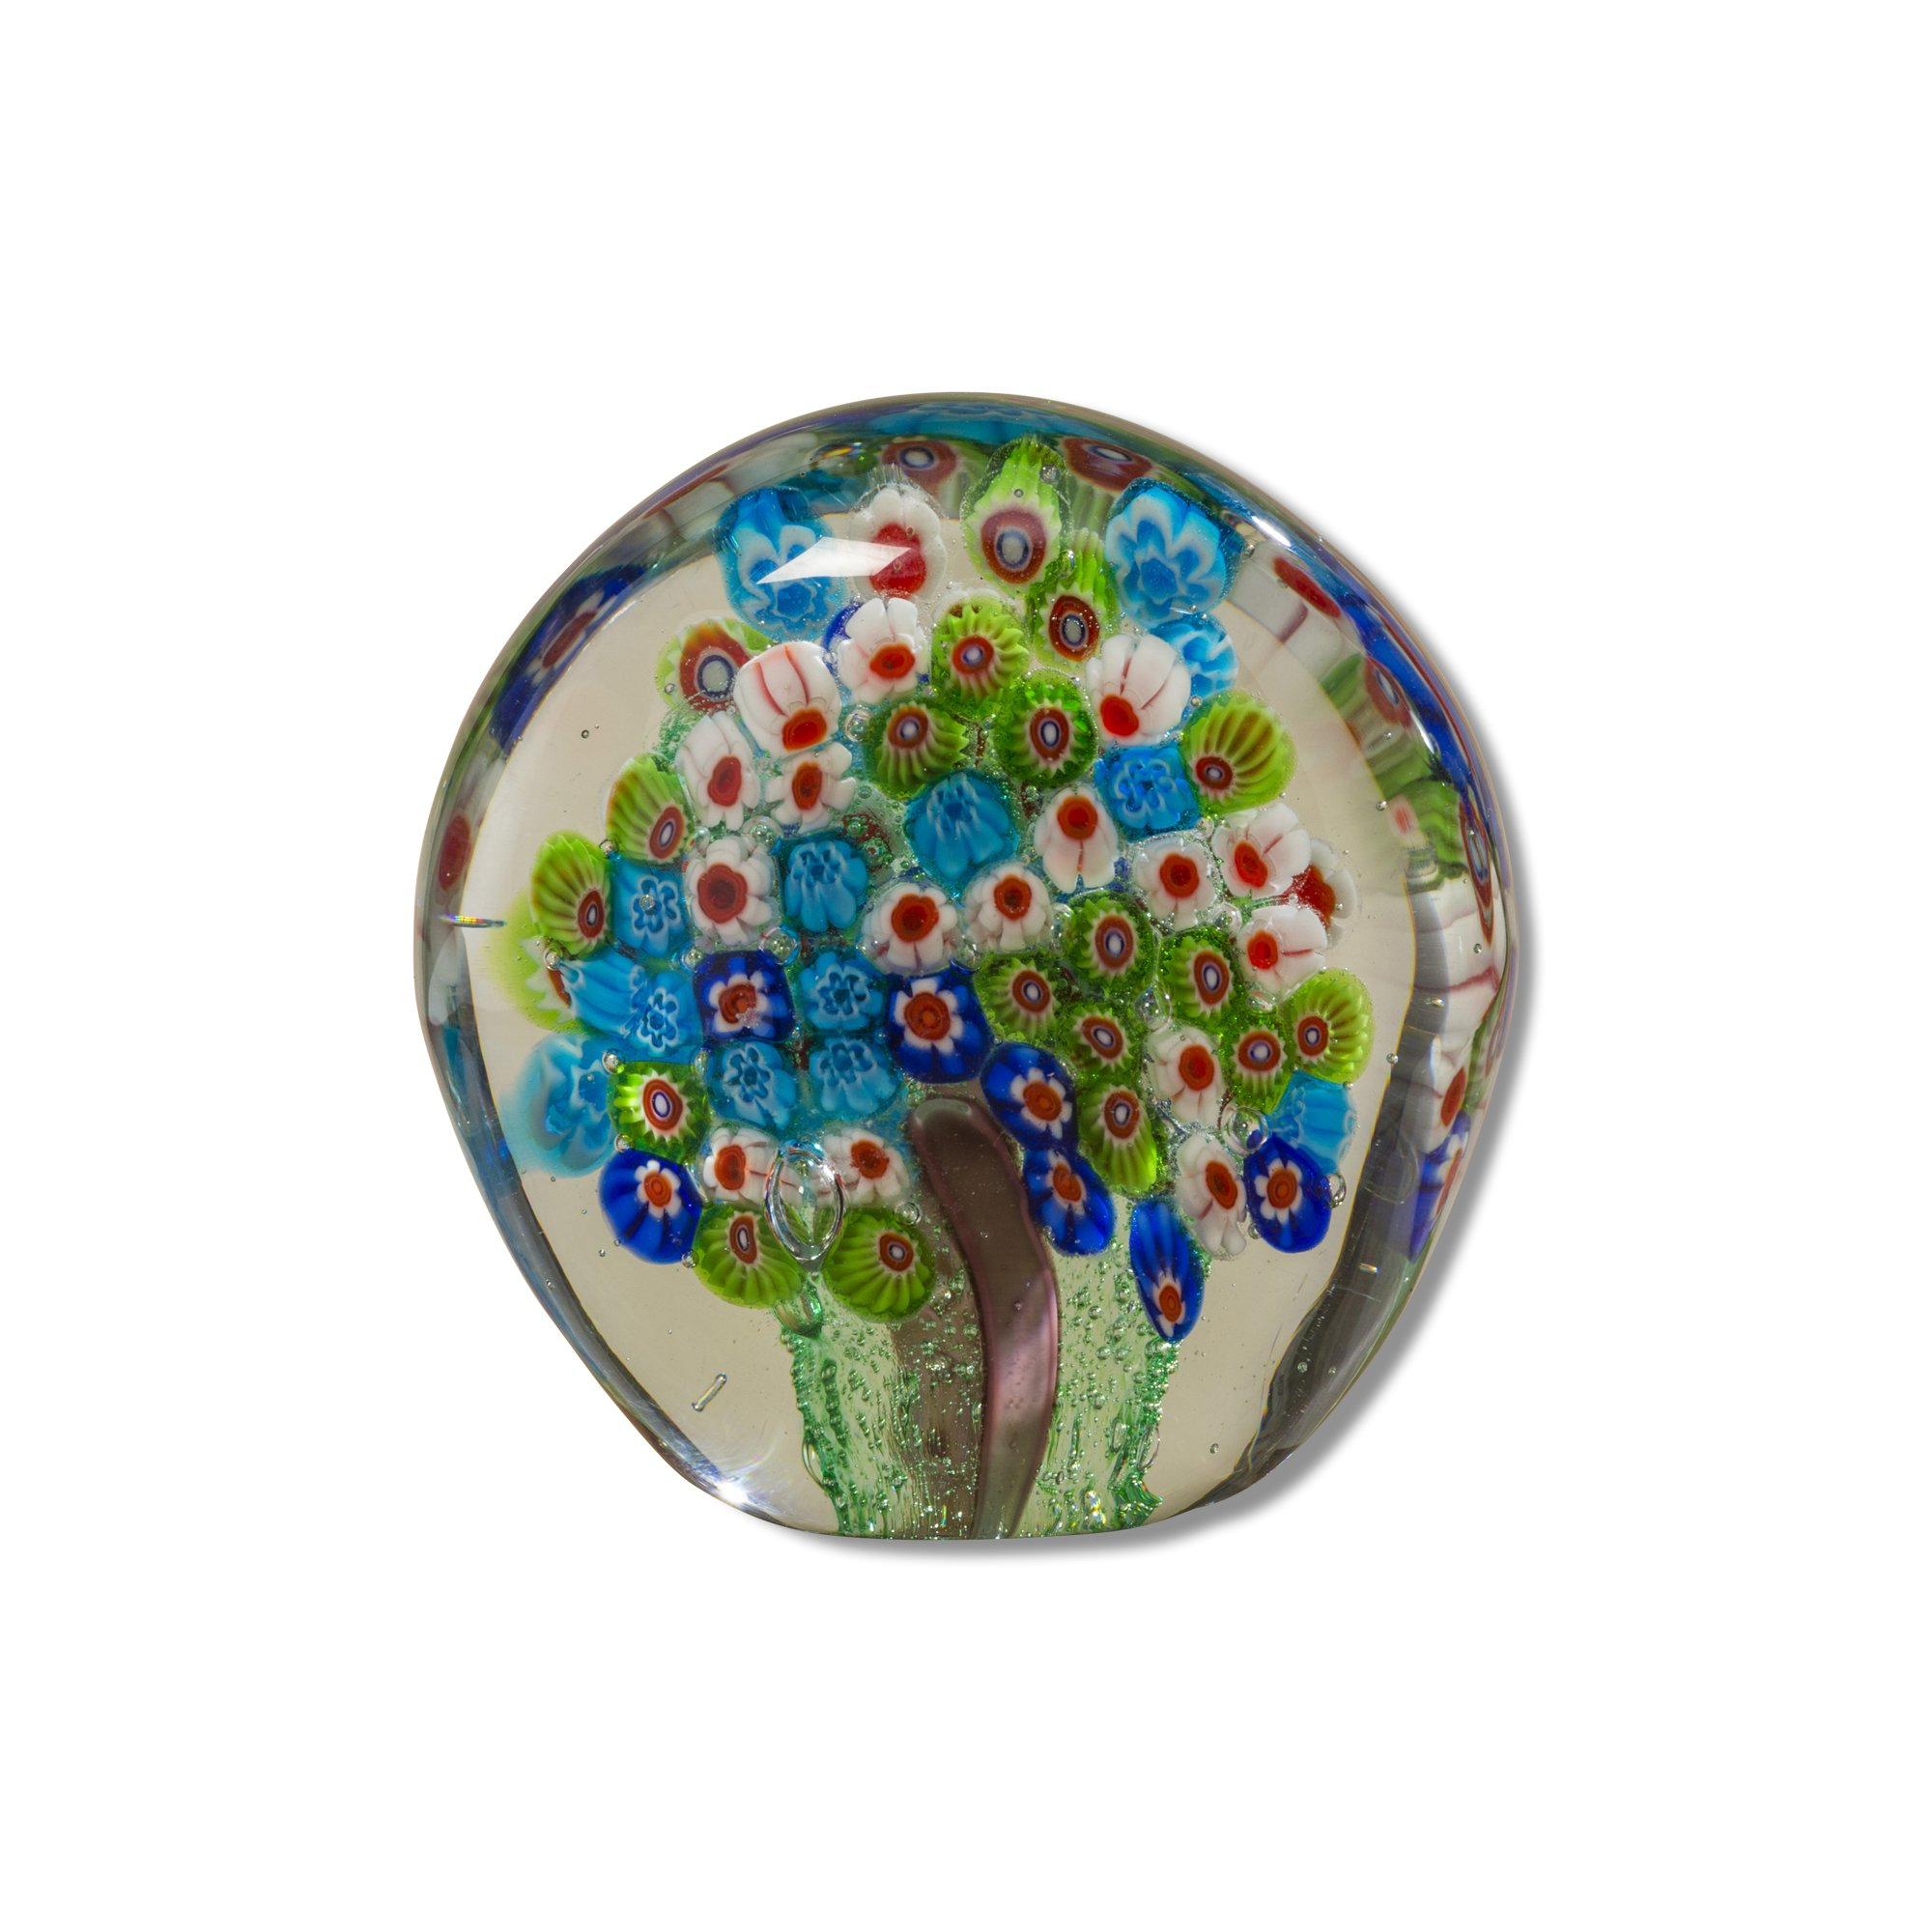 Whole House Worlds The Naturally Modern Blue Millefleurs Paperweight, Handcrafted, Art Glass, Round Drop Shape, 3 1/2 L x 2 W x 3 1/2 H, Flat Bottom, By